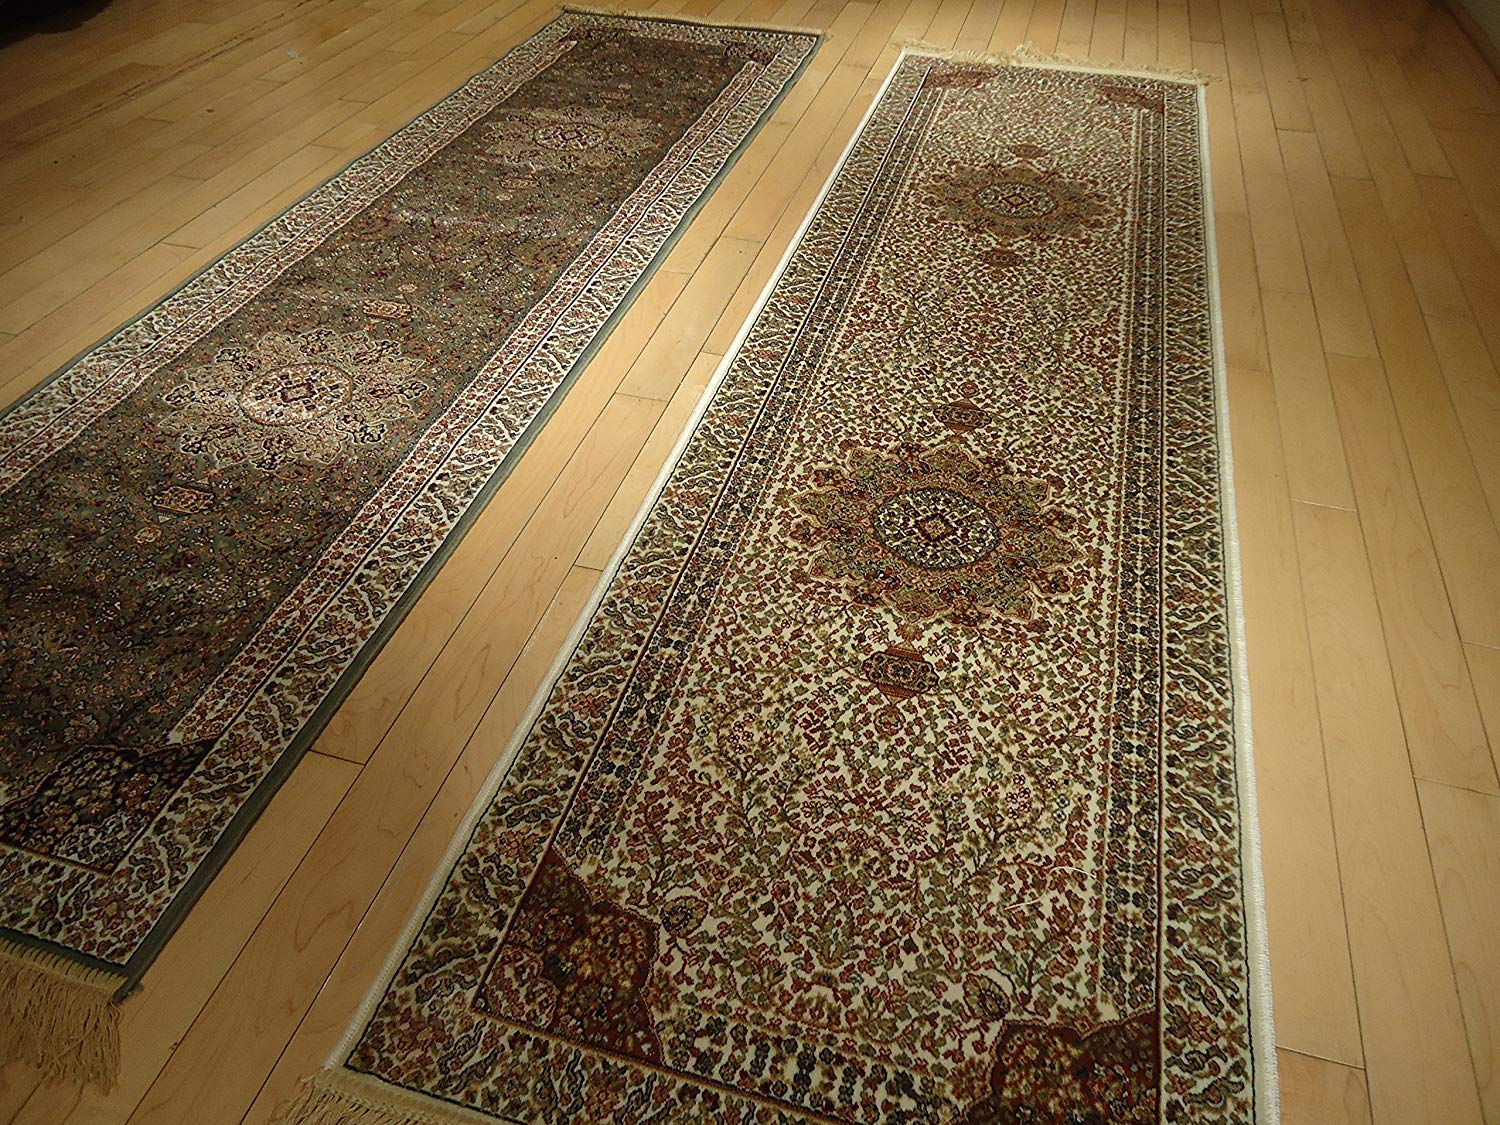 Rugs runners amazon.com: silk cream rug persian tabriz rugs long 2x12 hallway runner  ivory SKYPBAI